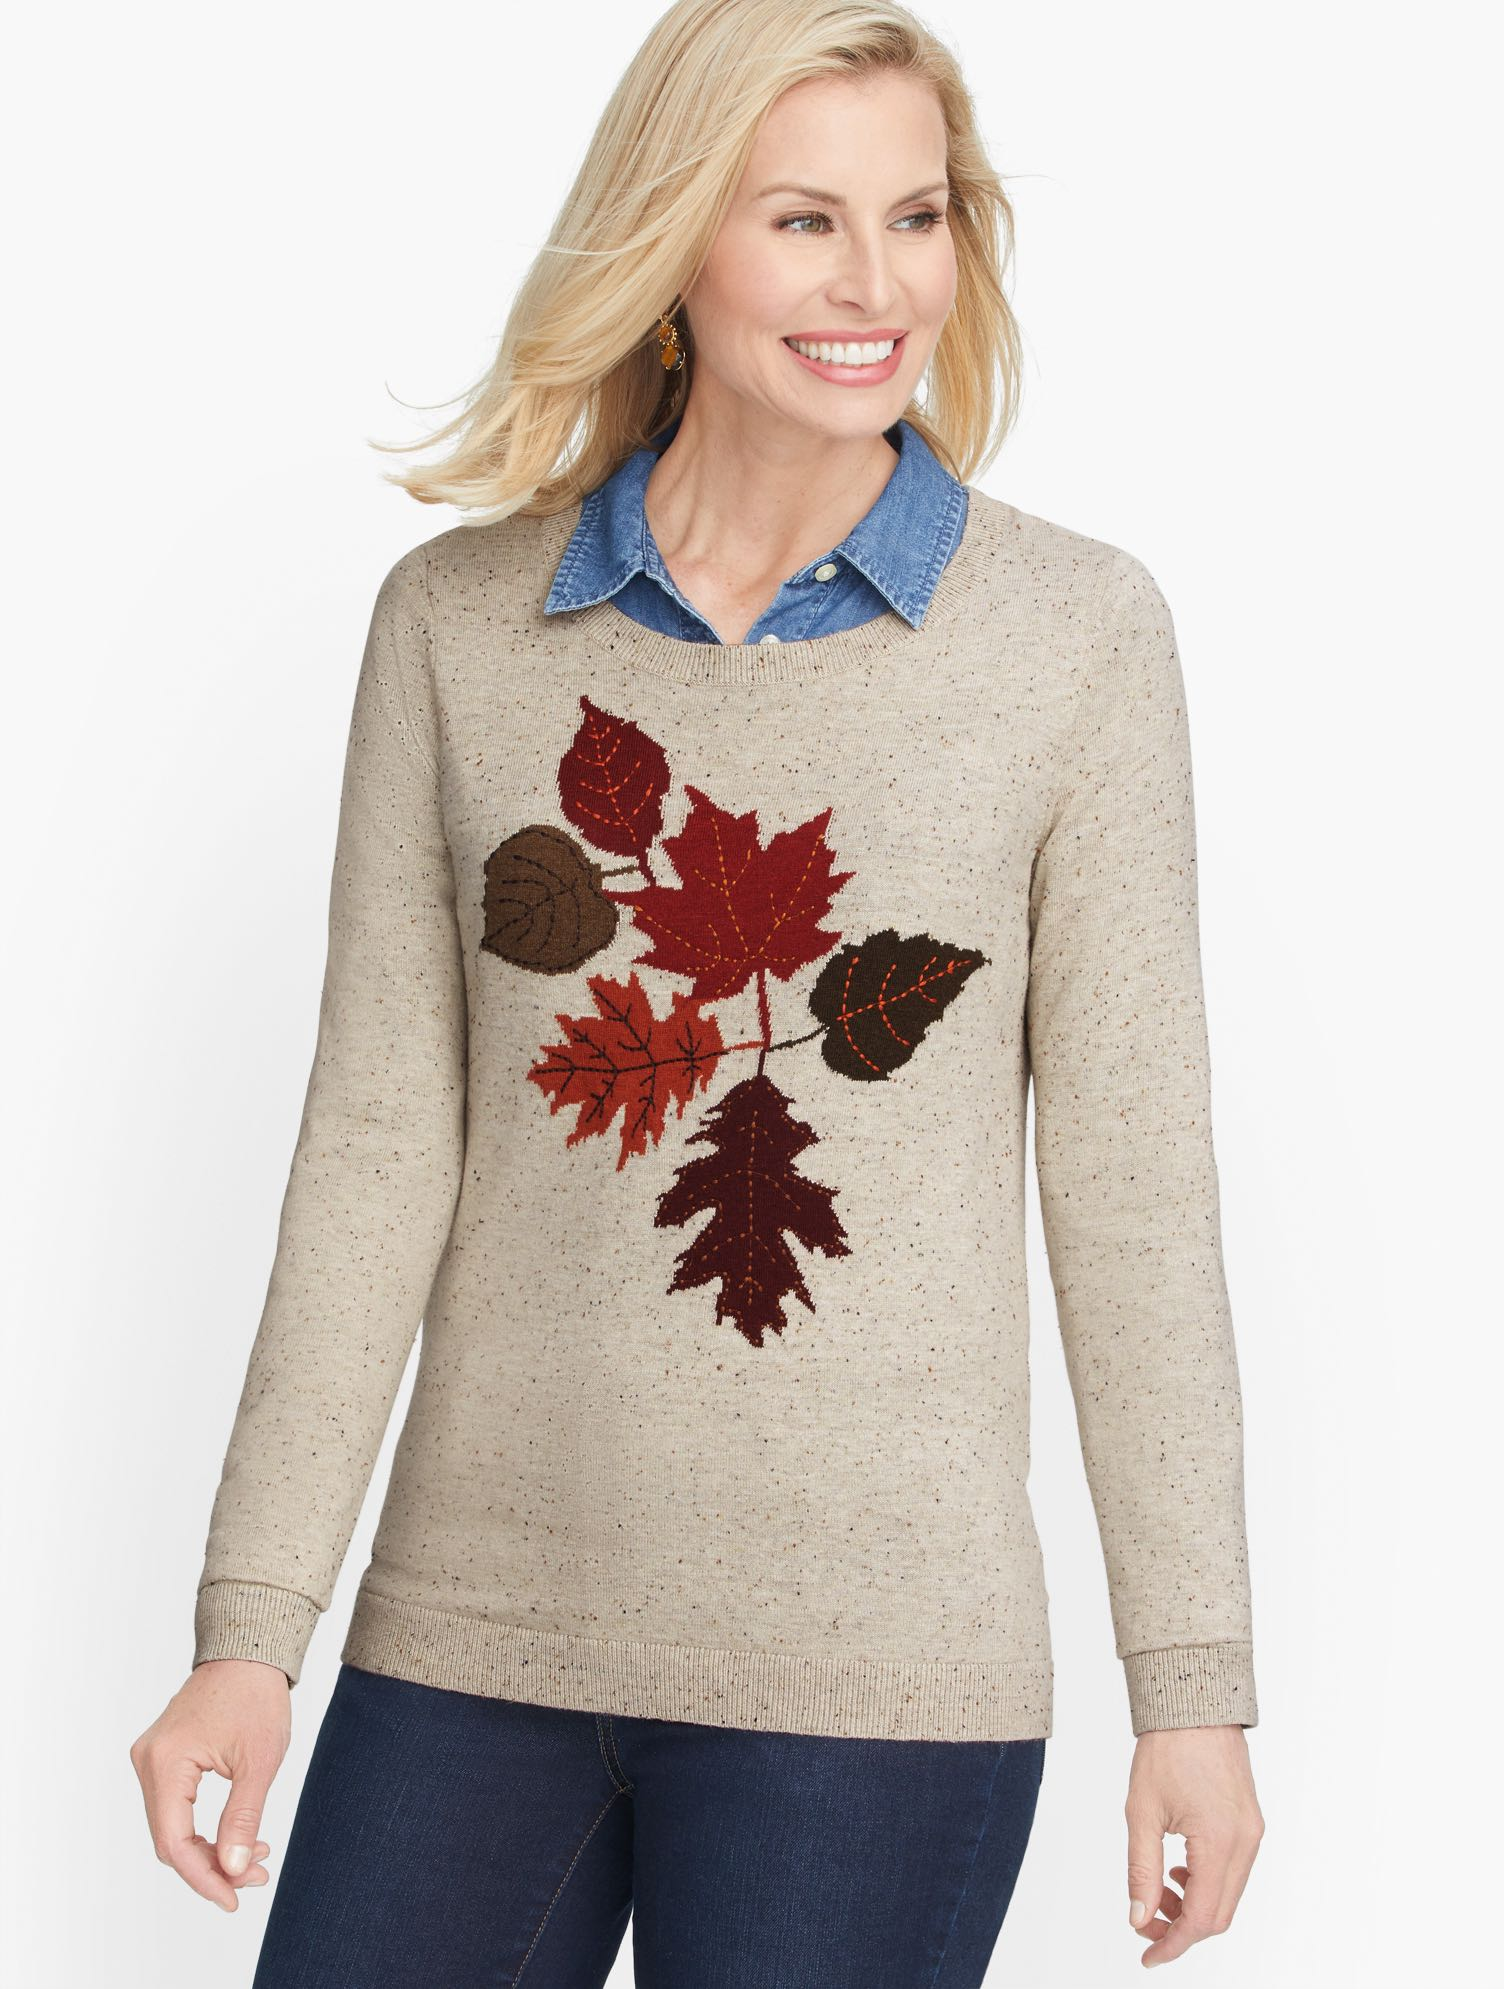 60s 70s Style Sweaters, Cardigans & Jumpers Leaf Motif Crewneck Sweater - Oatmeal Heather - 2X Talbots $99.00 AT vintagedancer.com